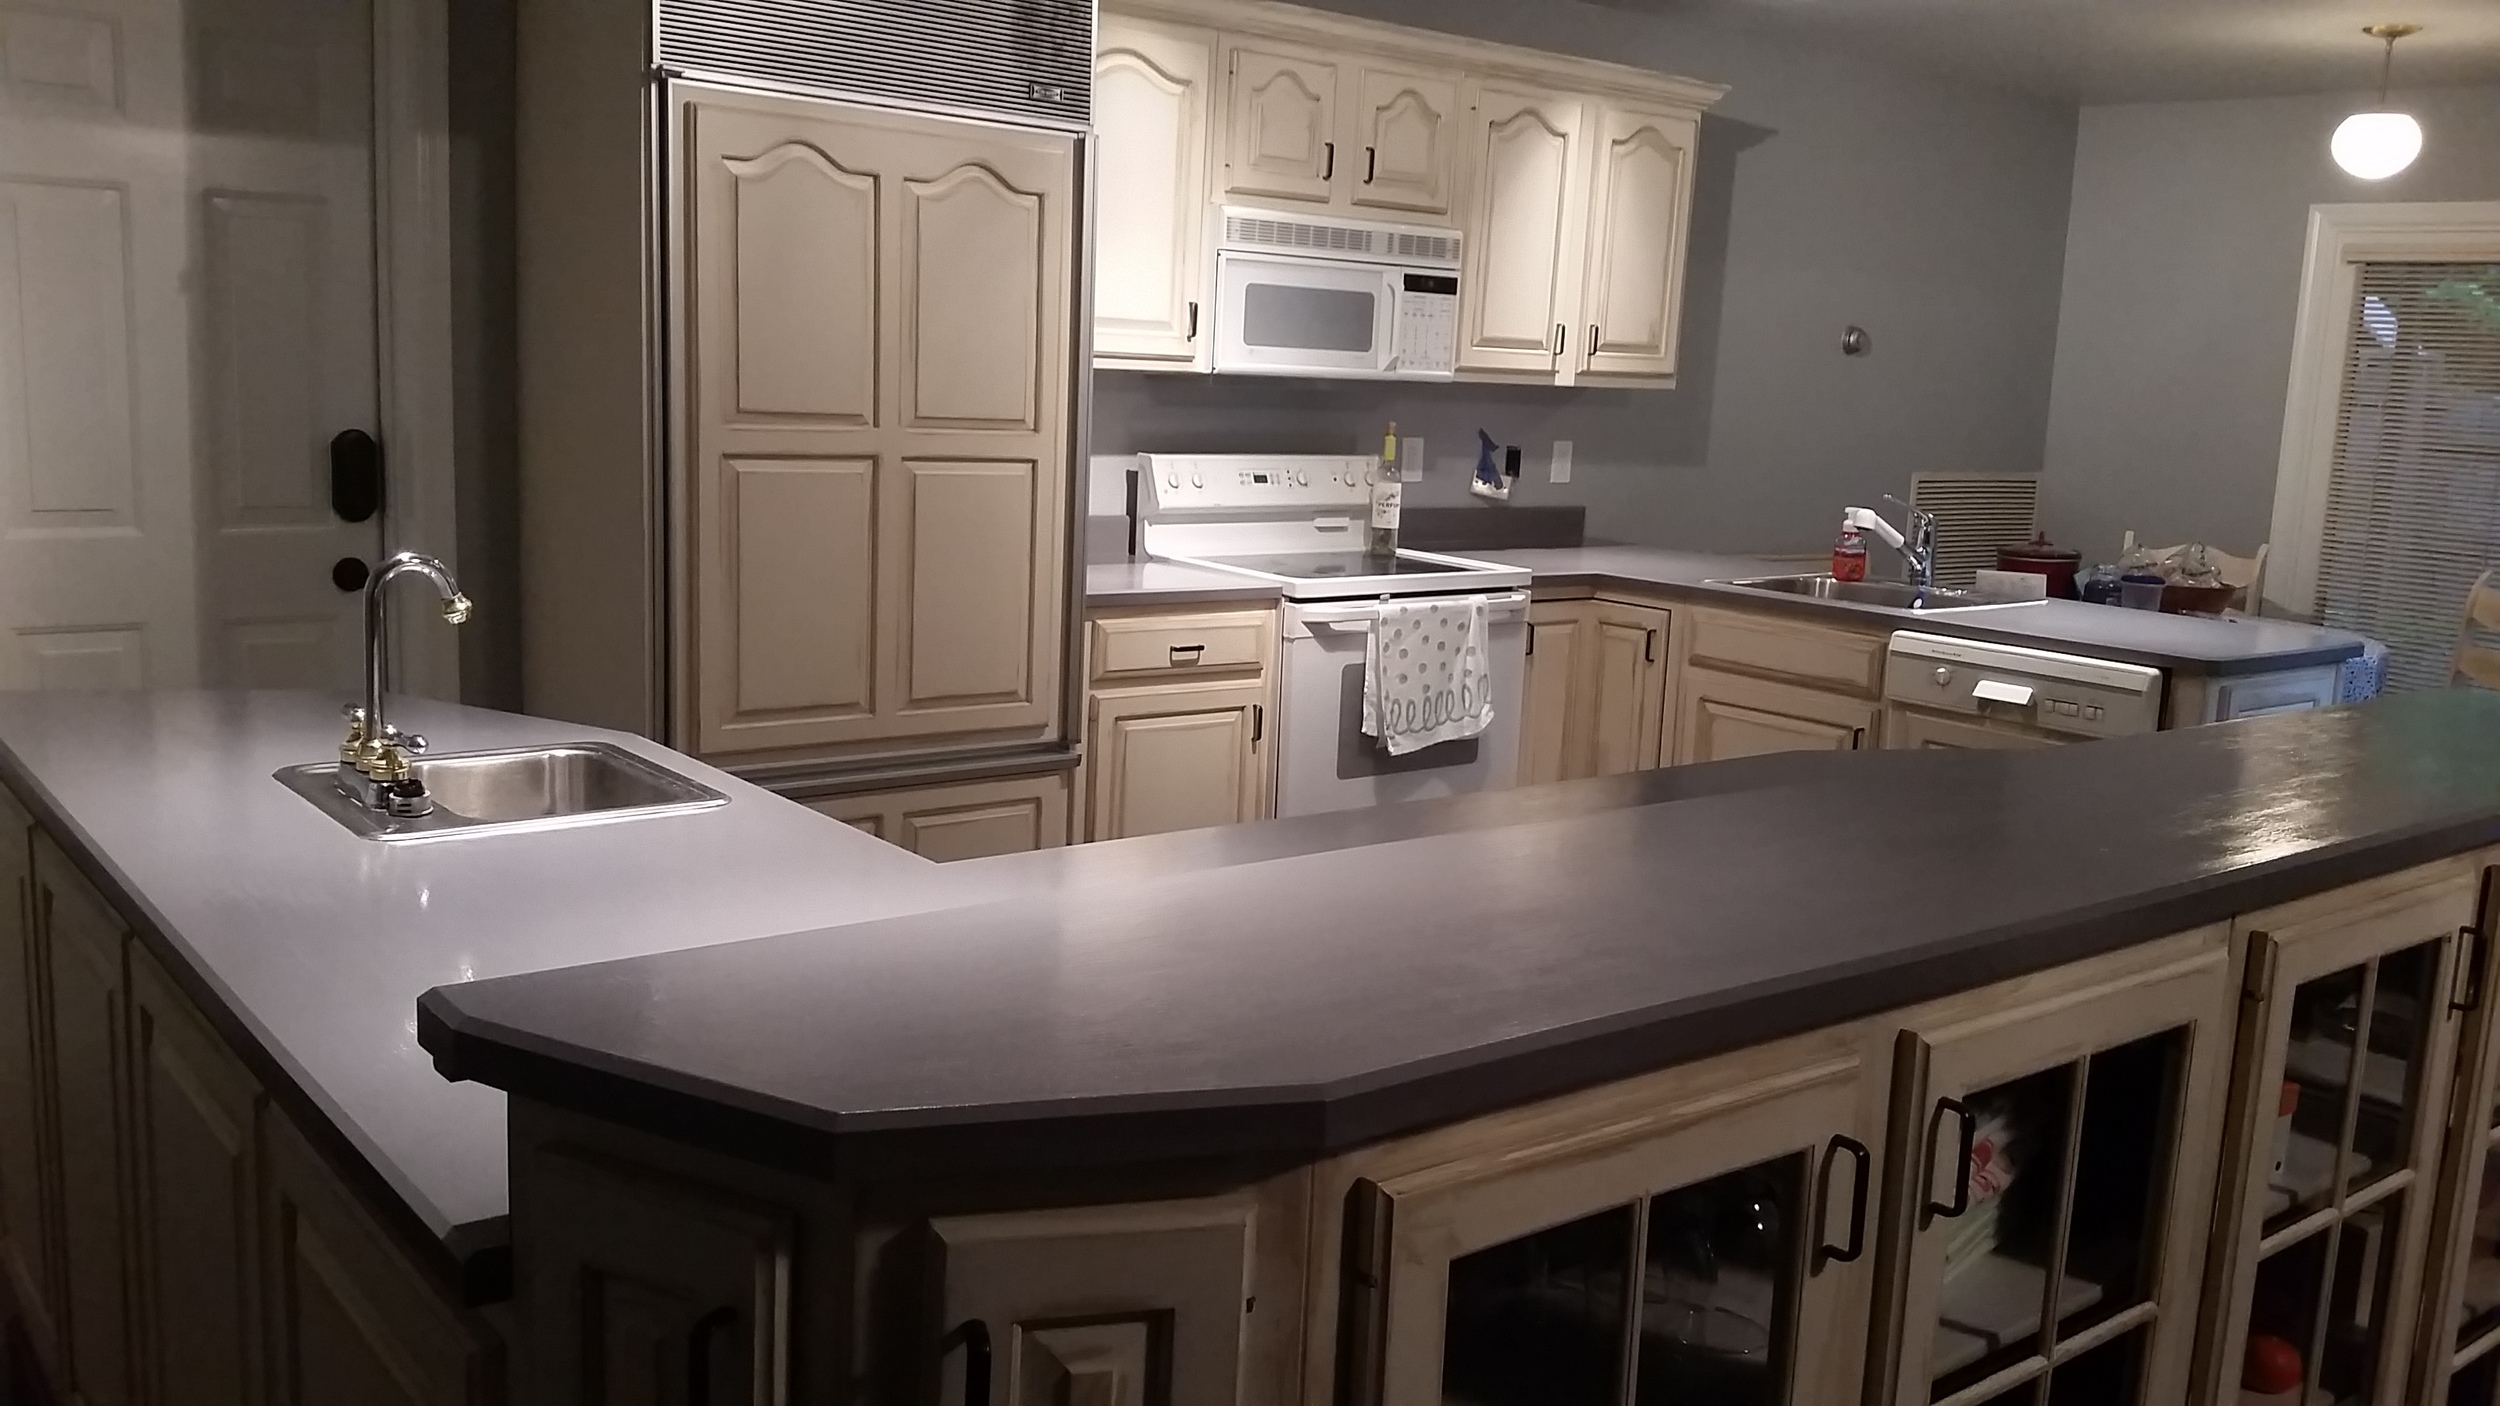 Here's an after shot of the painted kitchen.  The previously dark cabinet in the foreground is painted to match the rest of the cabinets, as well as the dark trim above the back cabinets.  This gives the whole space a more open feeling.  The counters were painted with Gray.  Some glitter was added in for subtle shine and then multiple layers of polycrylic.  The homeowner has since updated her faucets to the same oil rubbed bronze color the cabinet door pulls were painted.  They were previously chrome and gold.